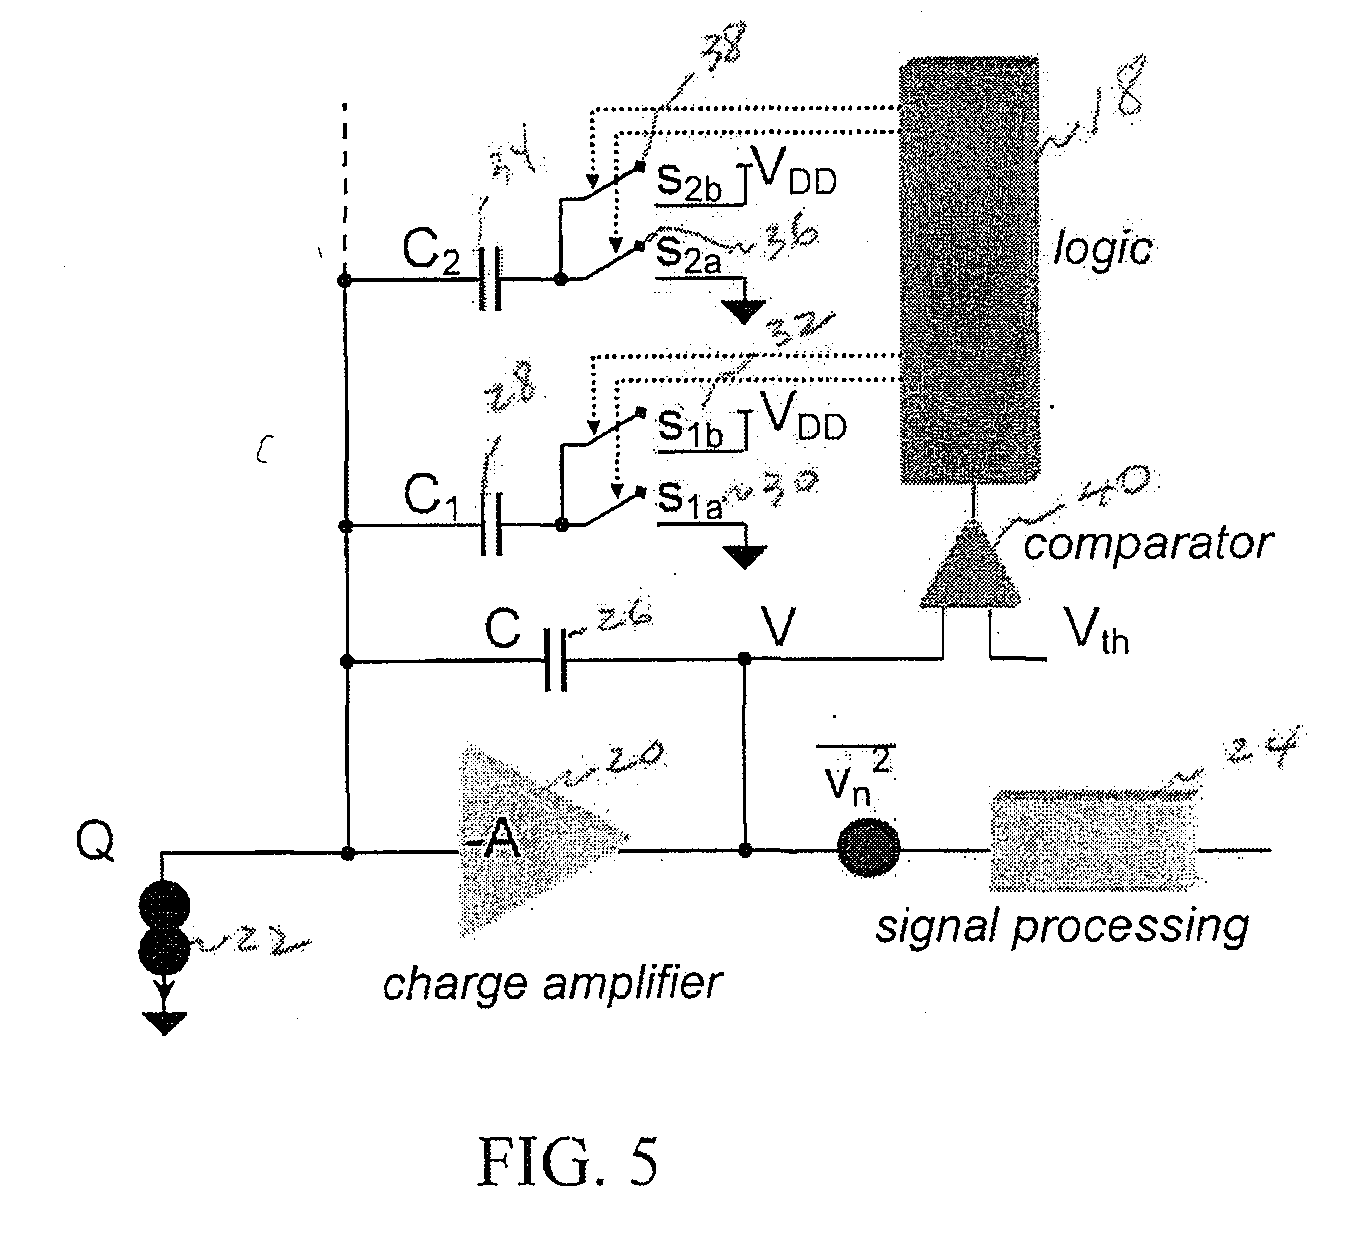 Us20100049459 High Dynamic Range Charge Amplifier Circuit Patent Drawing